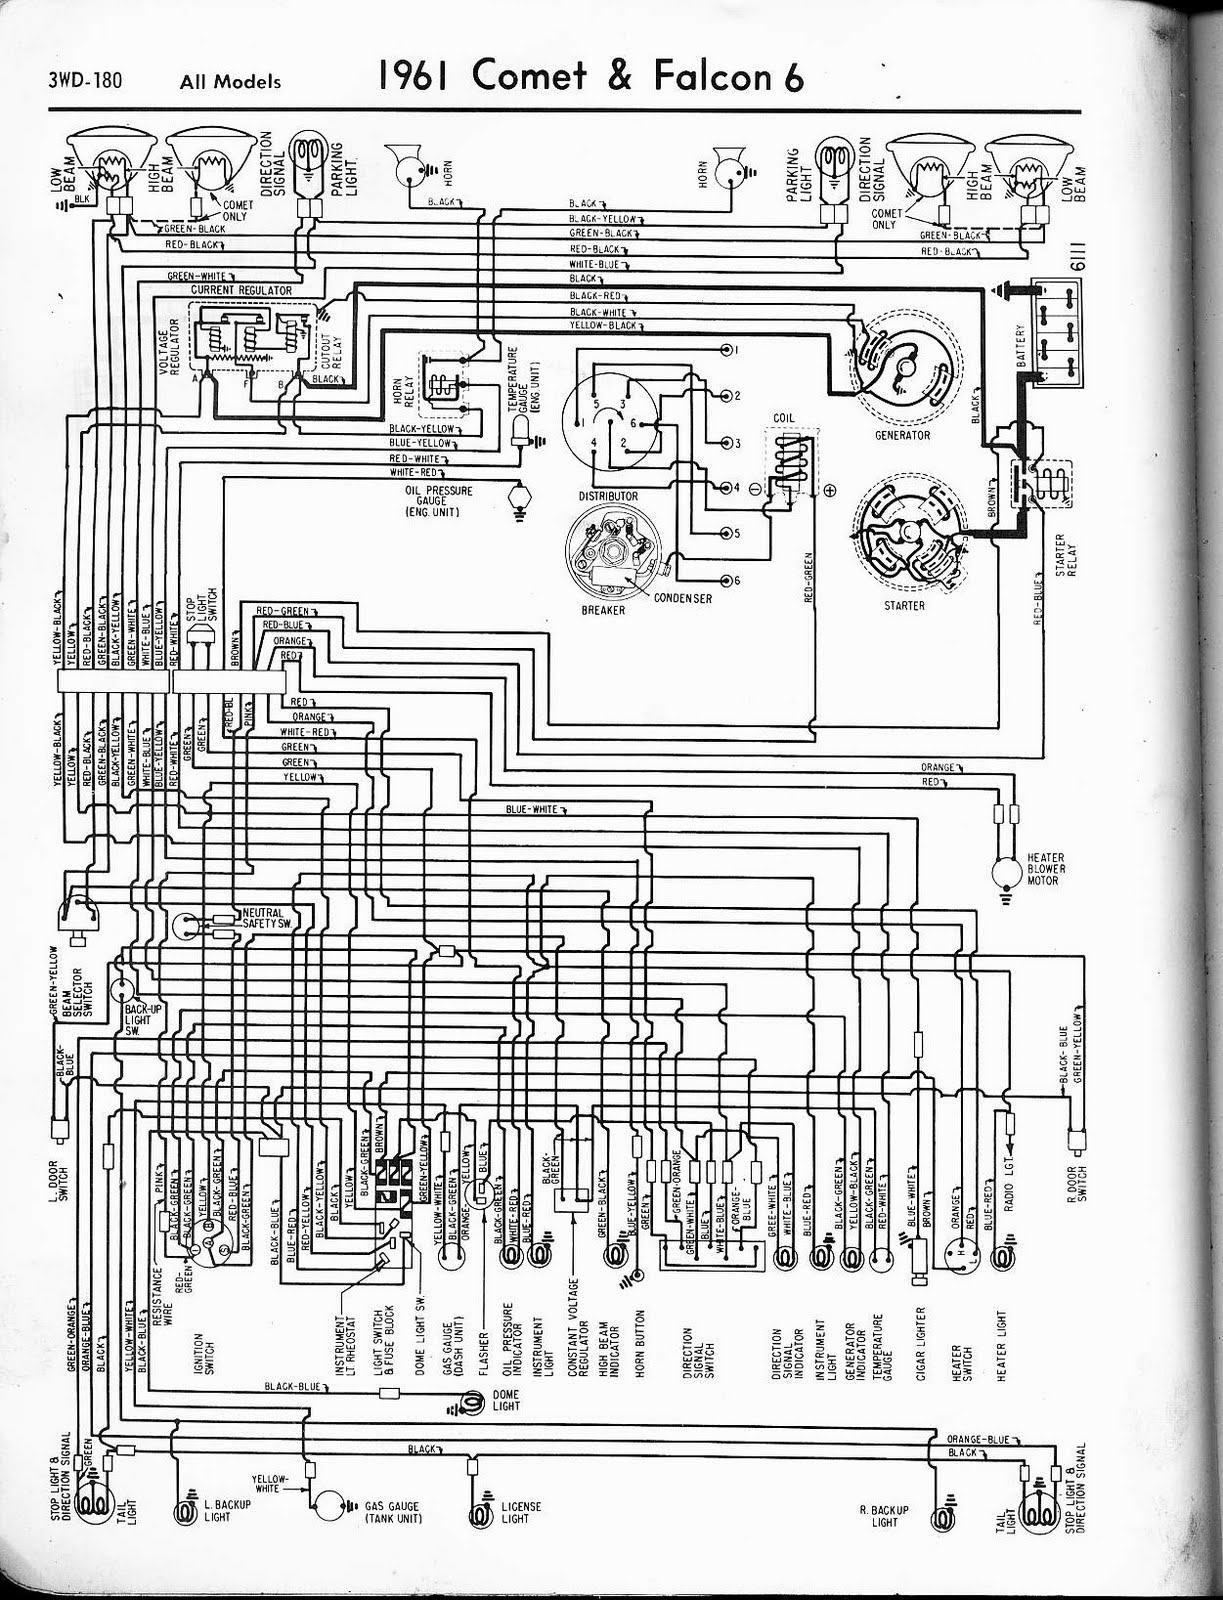 1994 Dodge Spirit Fuse Box Wiring Library 94 Diagram Belt Images Gallery Free Auto 1961 Ford Falcon U0026 Comet